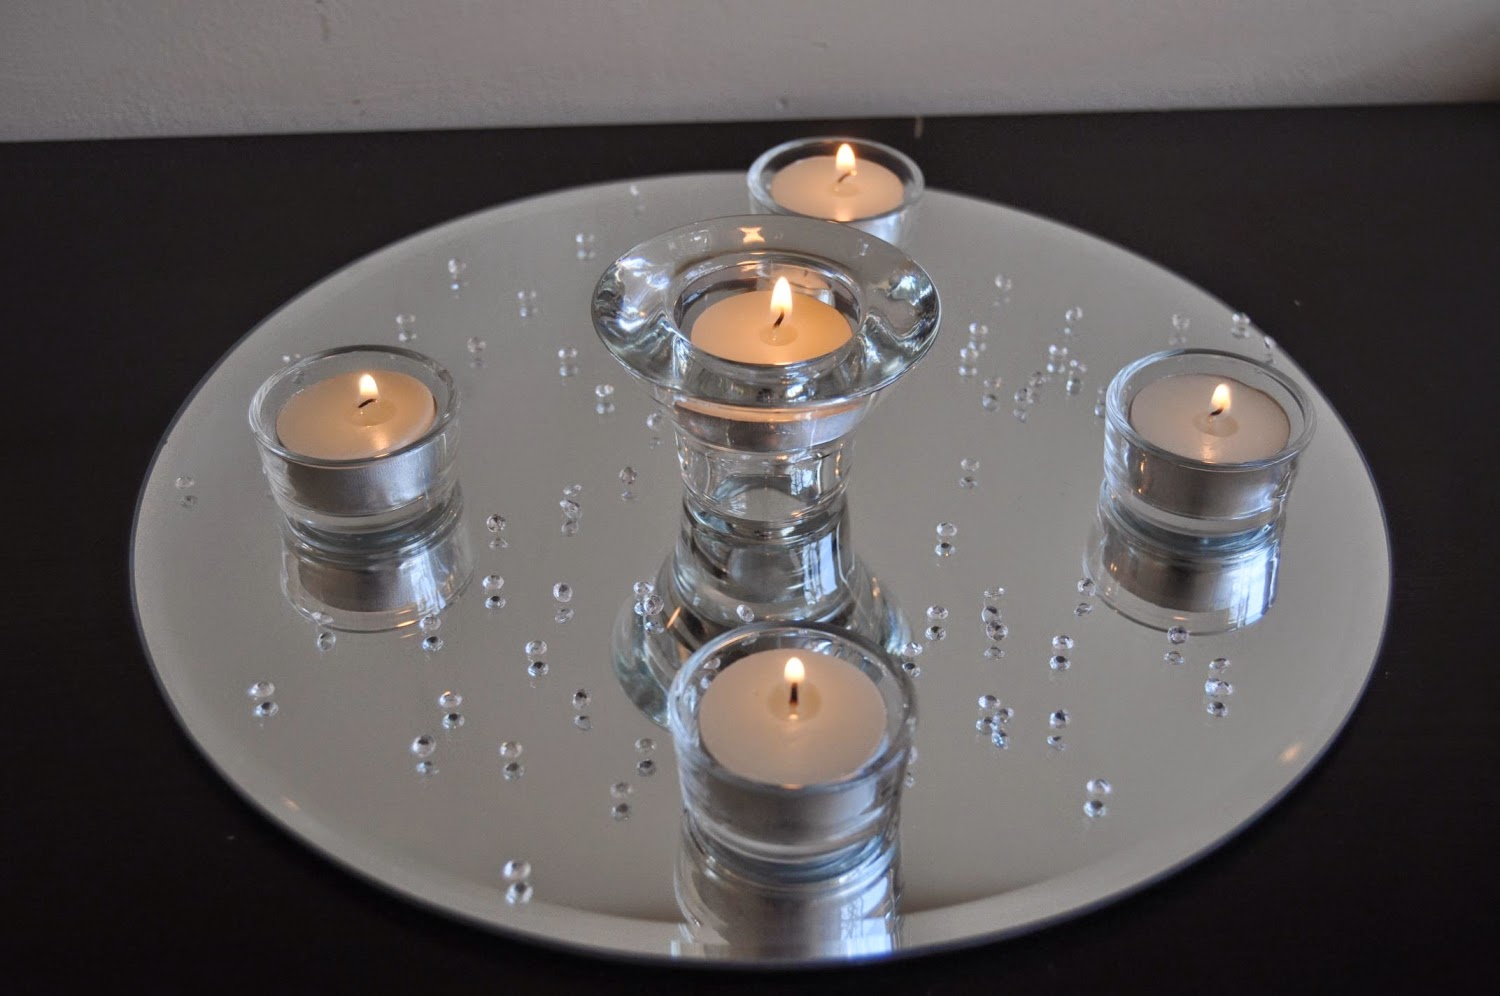 Mirror Scatters Tealights